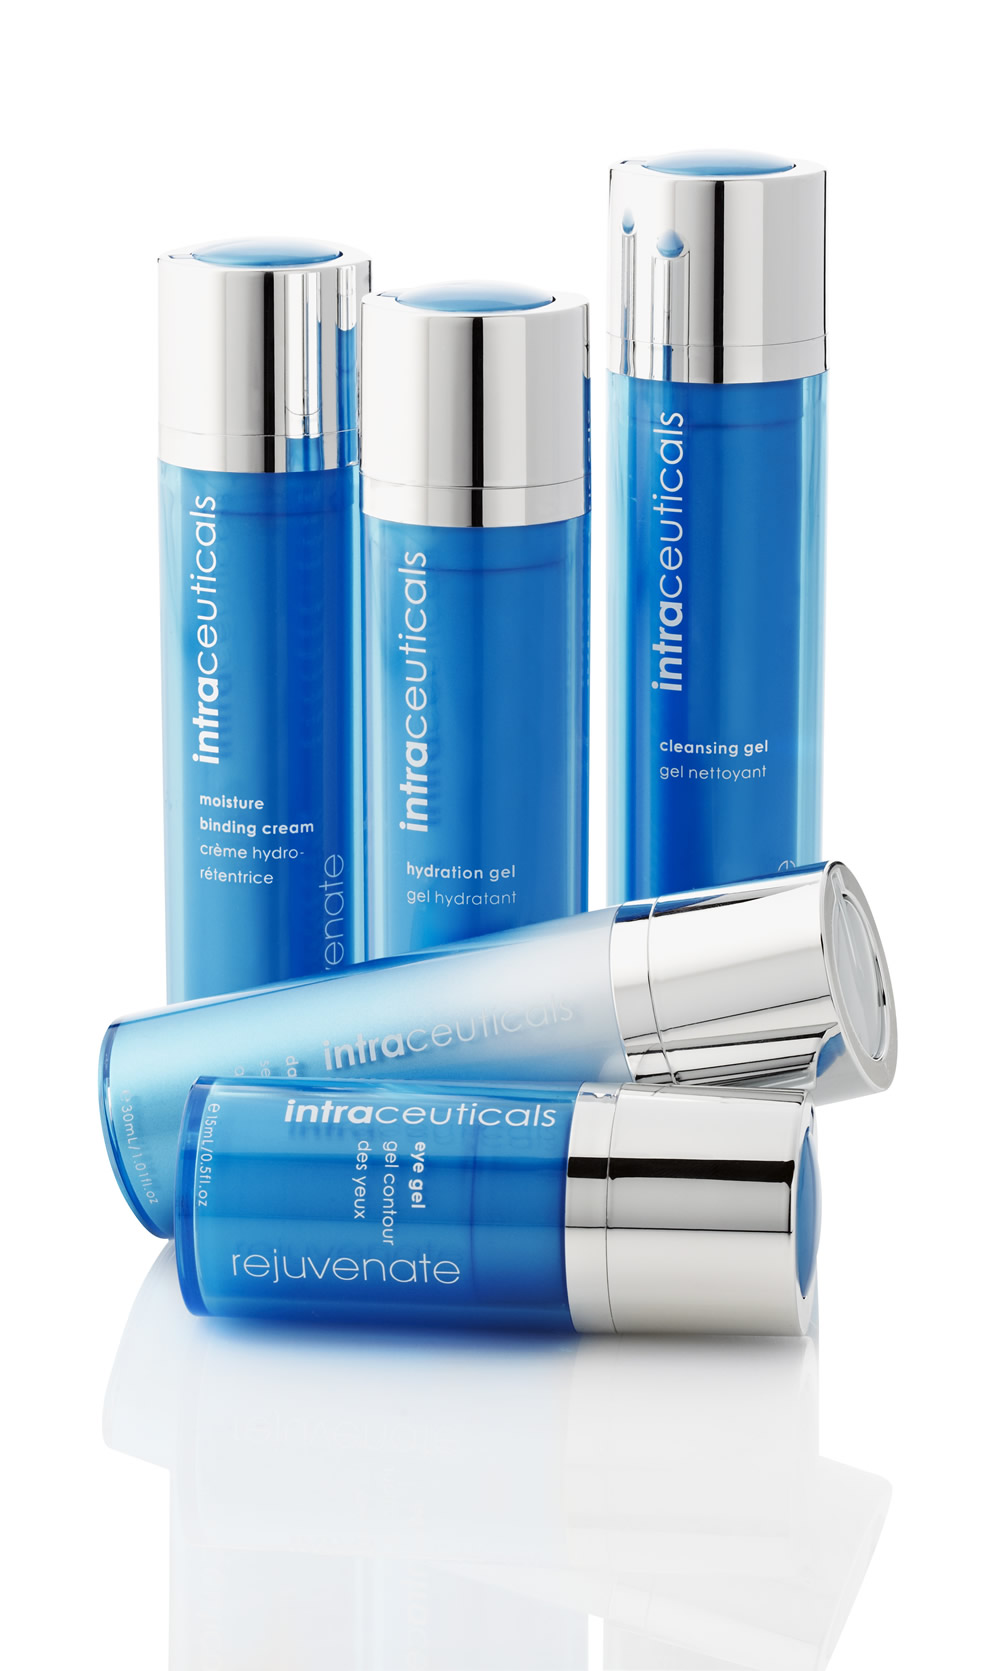 Rejuvenate-products-intraceuticals